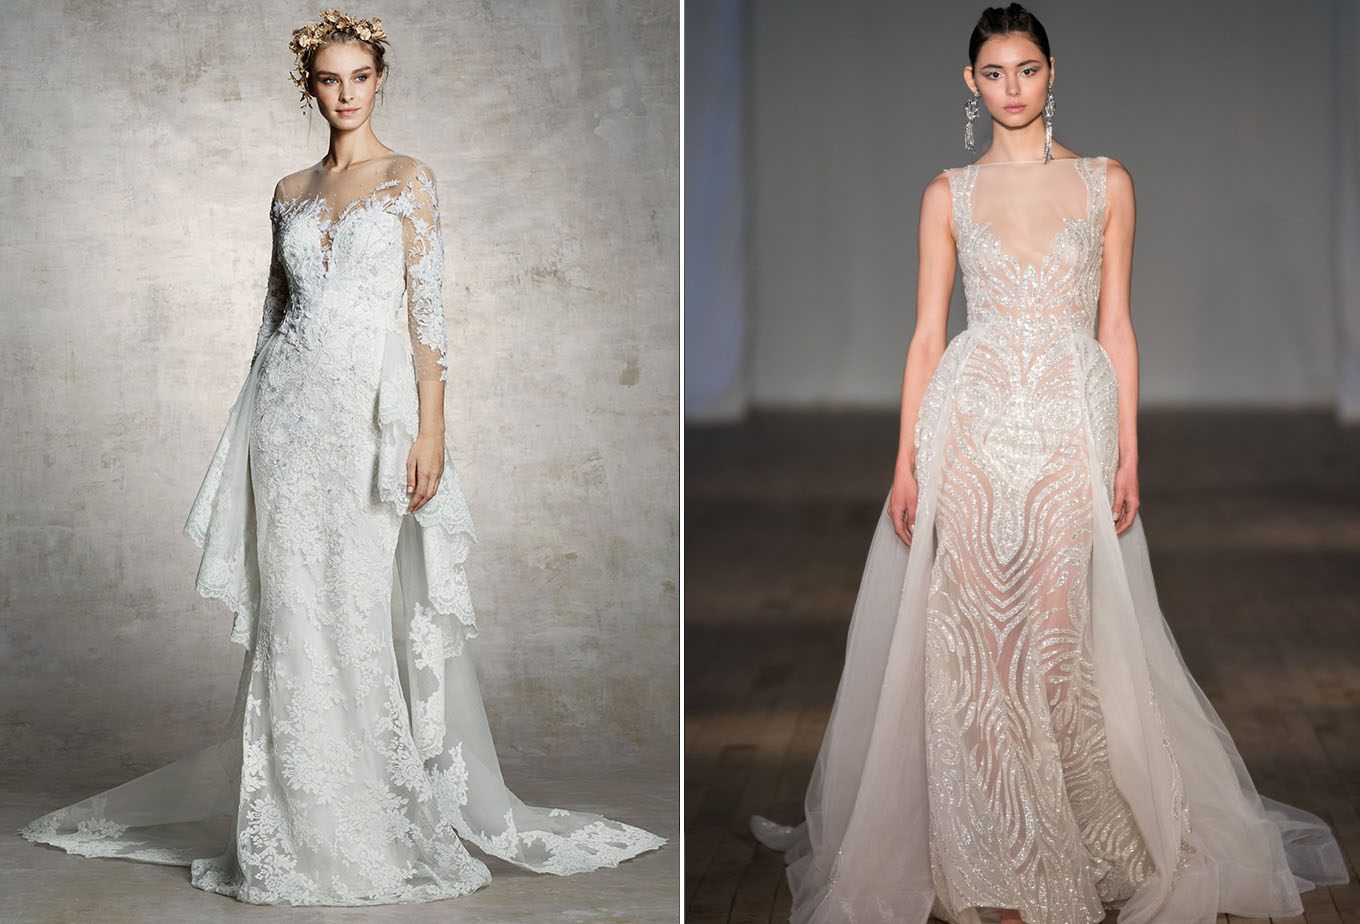 The Latest Wedding Dress Trends From Spring 2019 Bridal Fashion Week